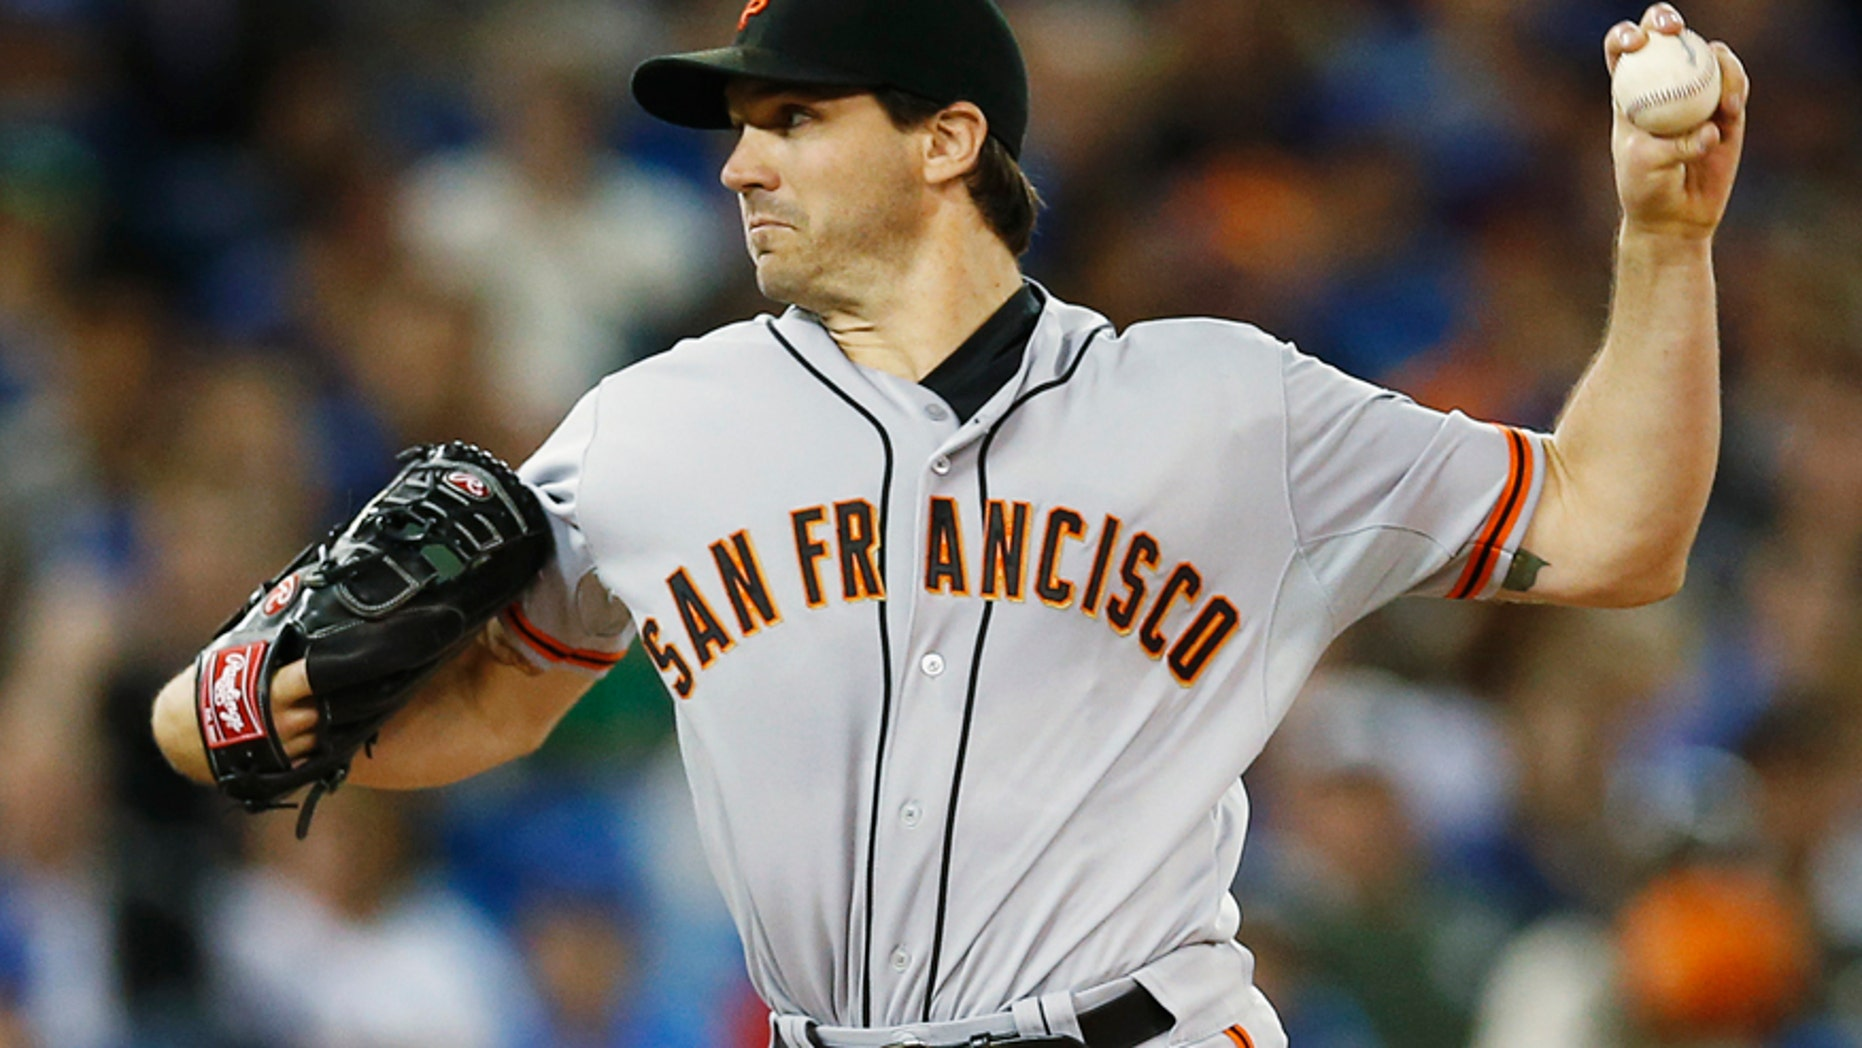 San Francisco Giants pitcher Barry Zito pitches to the Toronto Blue Jays during the first inning of their MLB American League baseball game in Toronto, May 14, 2013.